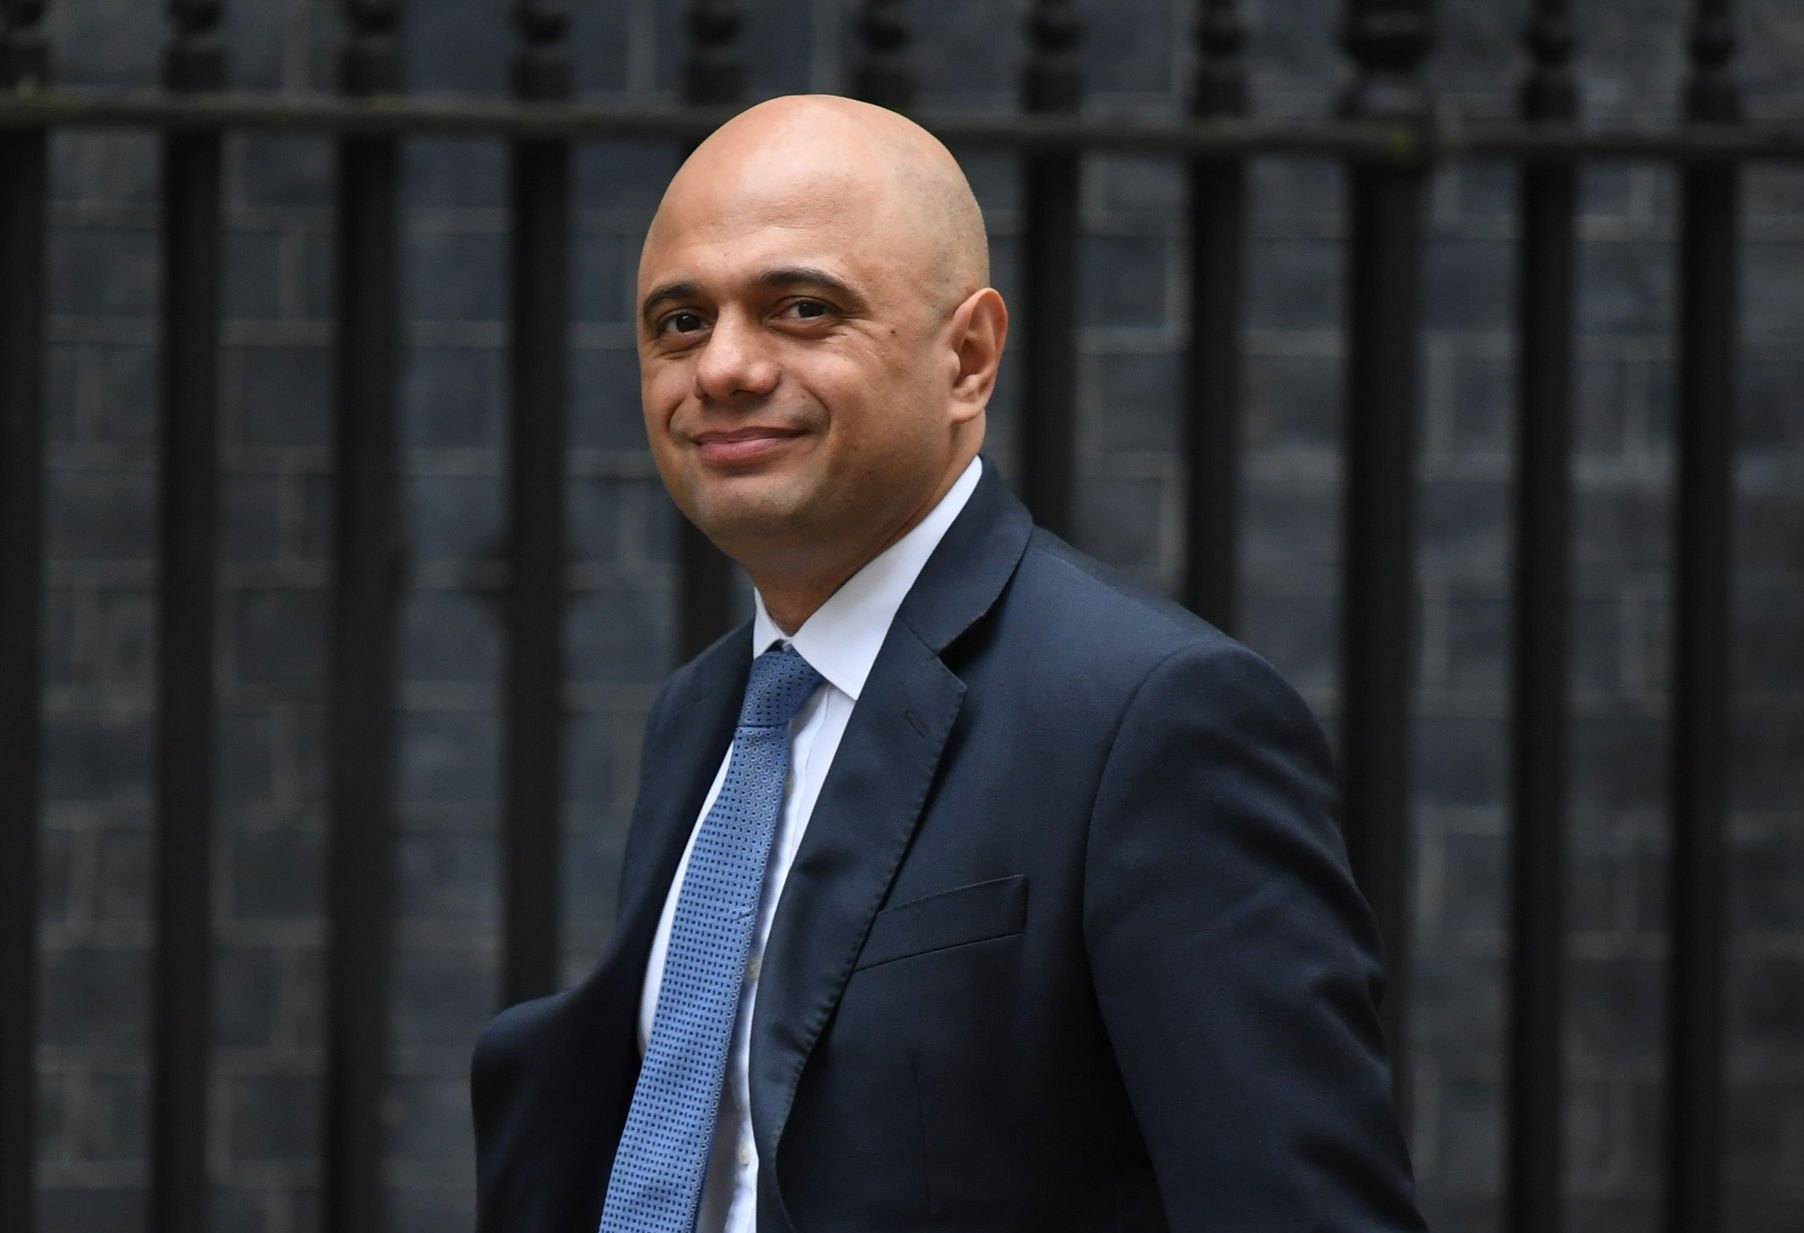 Secretary of State for Housing, Communities and Local Government, Sajid Javid, arrives in Downing Street, London, for a cabinet meeting. PRESS ASSOCIATION Photo. Picture date: Tuesday April 24, 2018. Photo credit should read: Victoria Jones/PA Wire